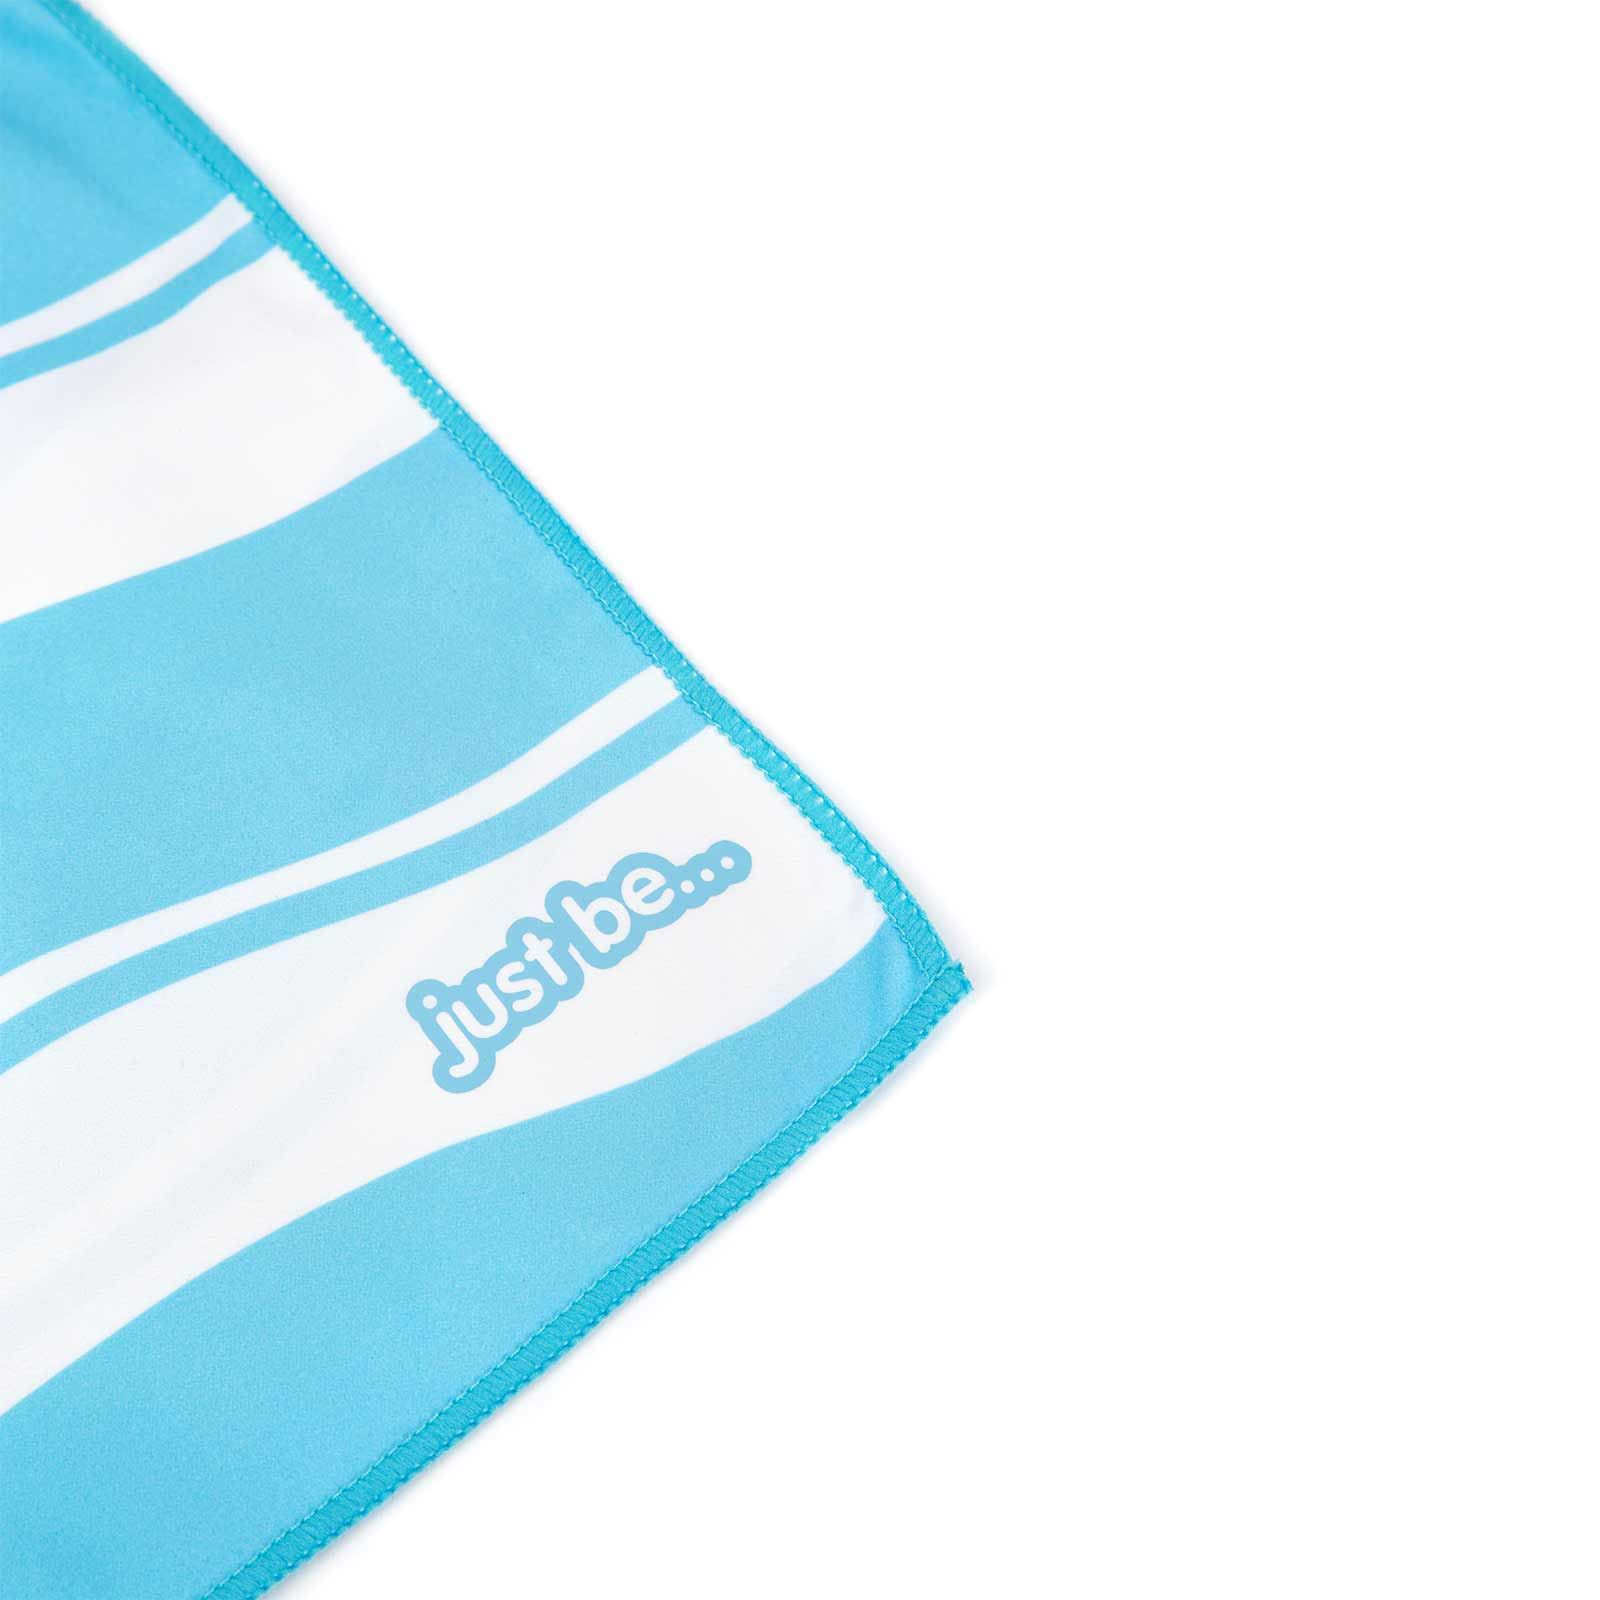 thumbnail 19 - Compact Large Quick Dry Microfibre Beach Towel with Travel Bag Camping Yoga Swim